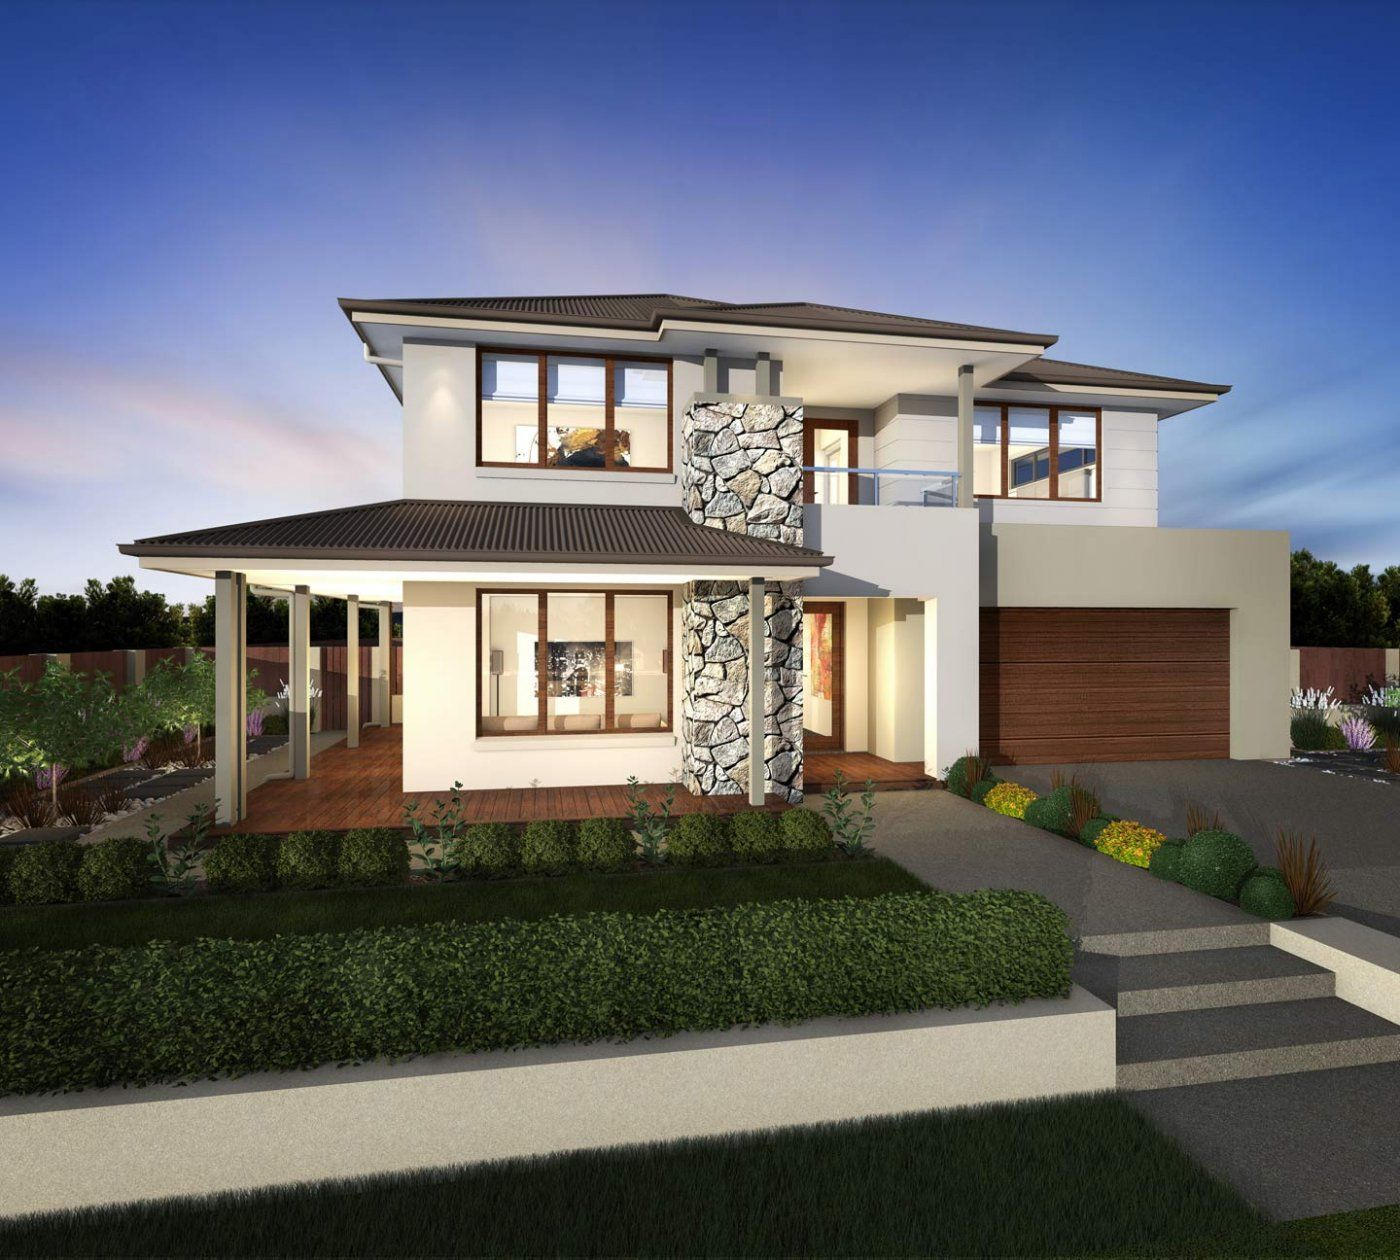 Huntingdale facades mcdonald jones homes like the for House plans with large front windows